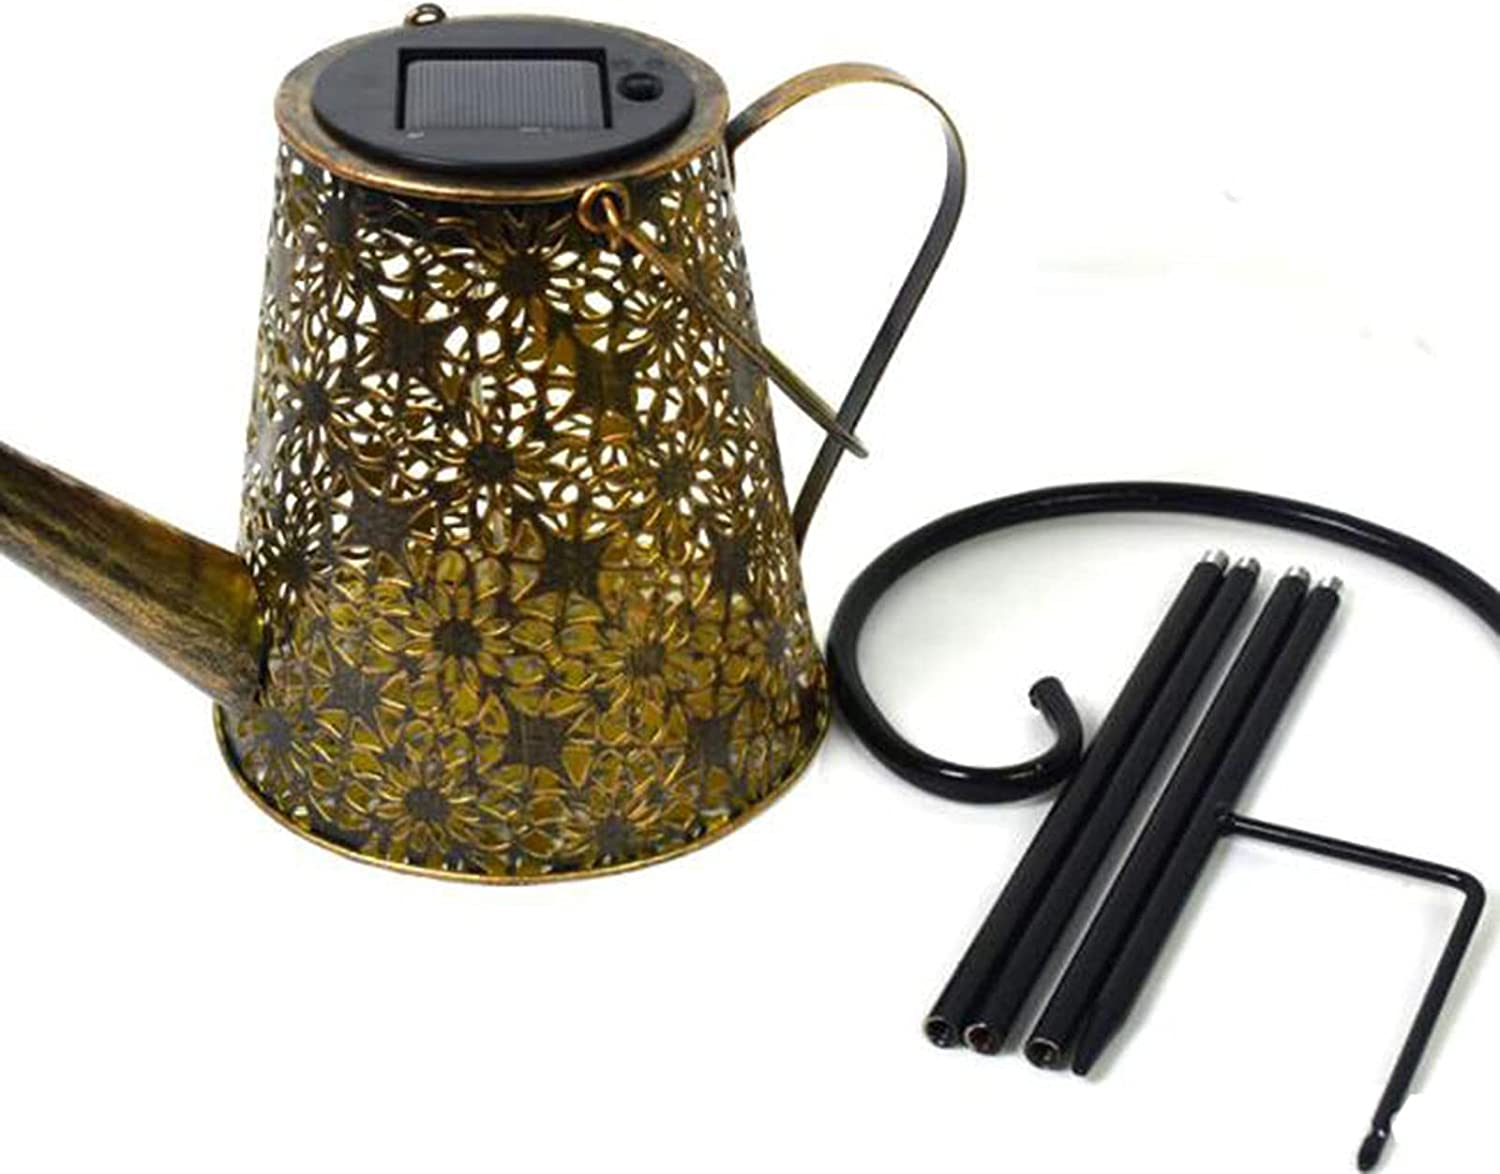 Luxury fgfg Solar Watering Can with Outdoor NEW before selling Waterproof Hanging Lights